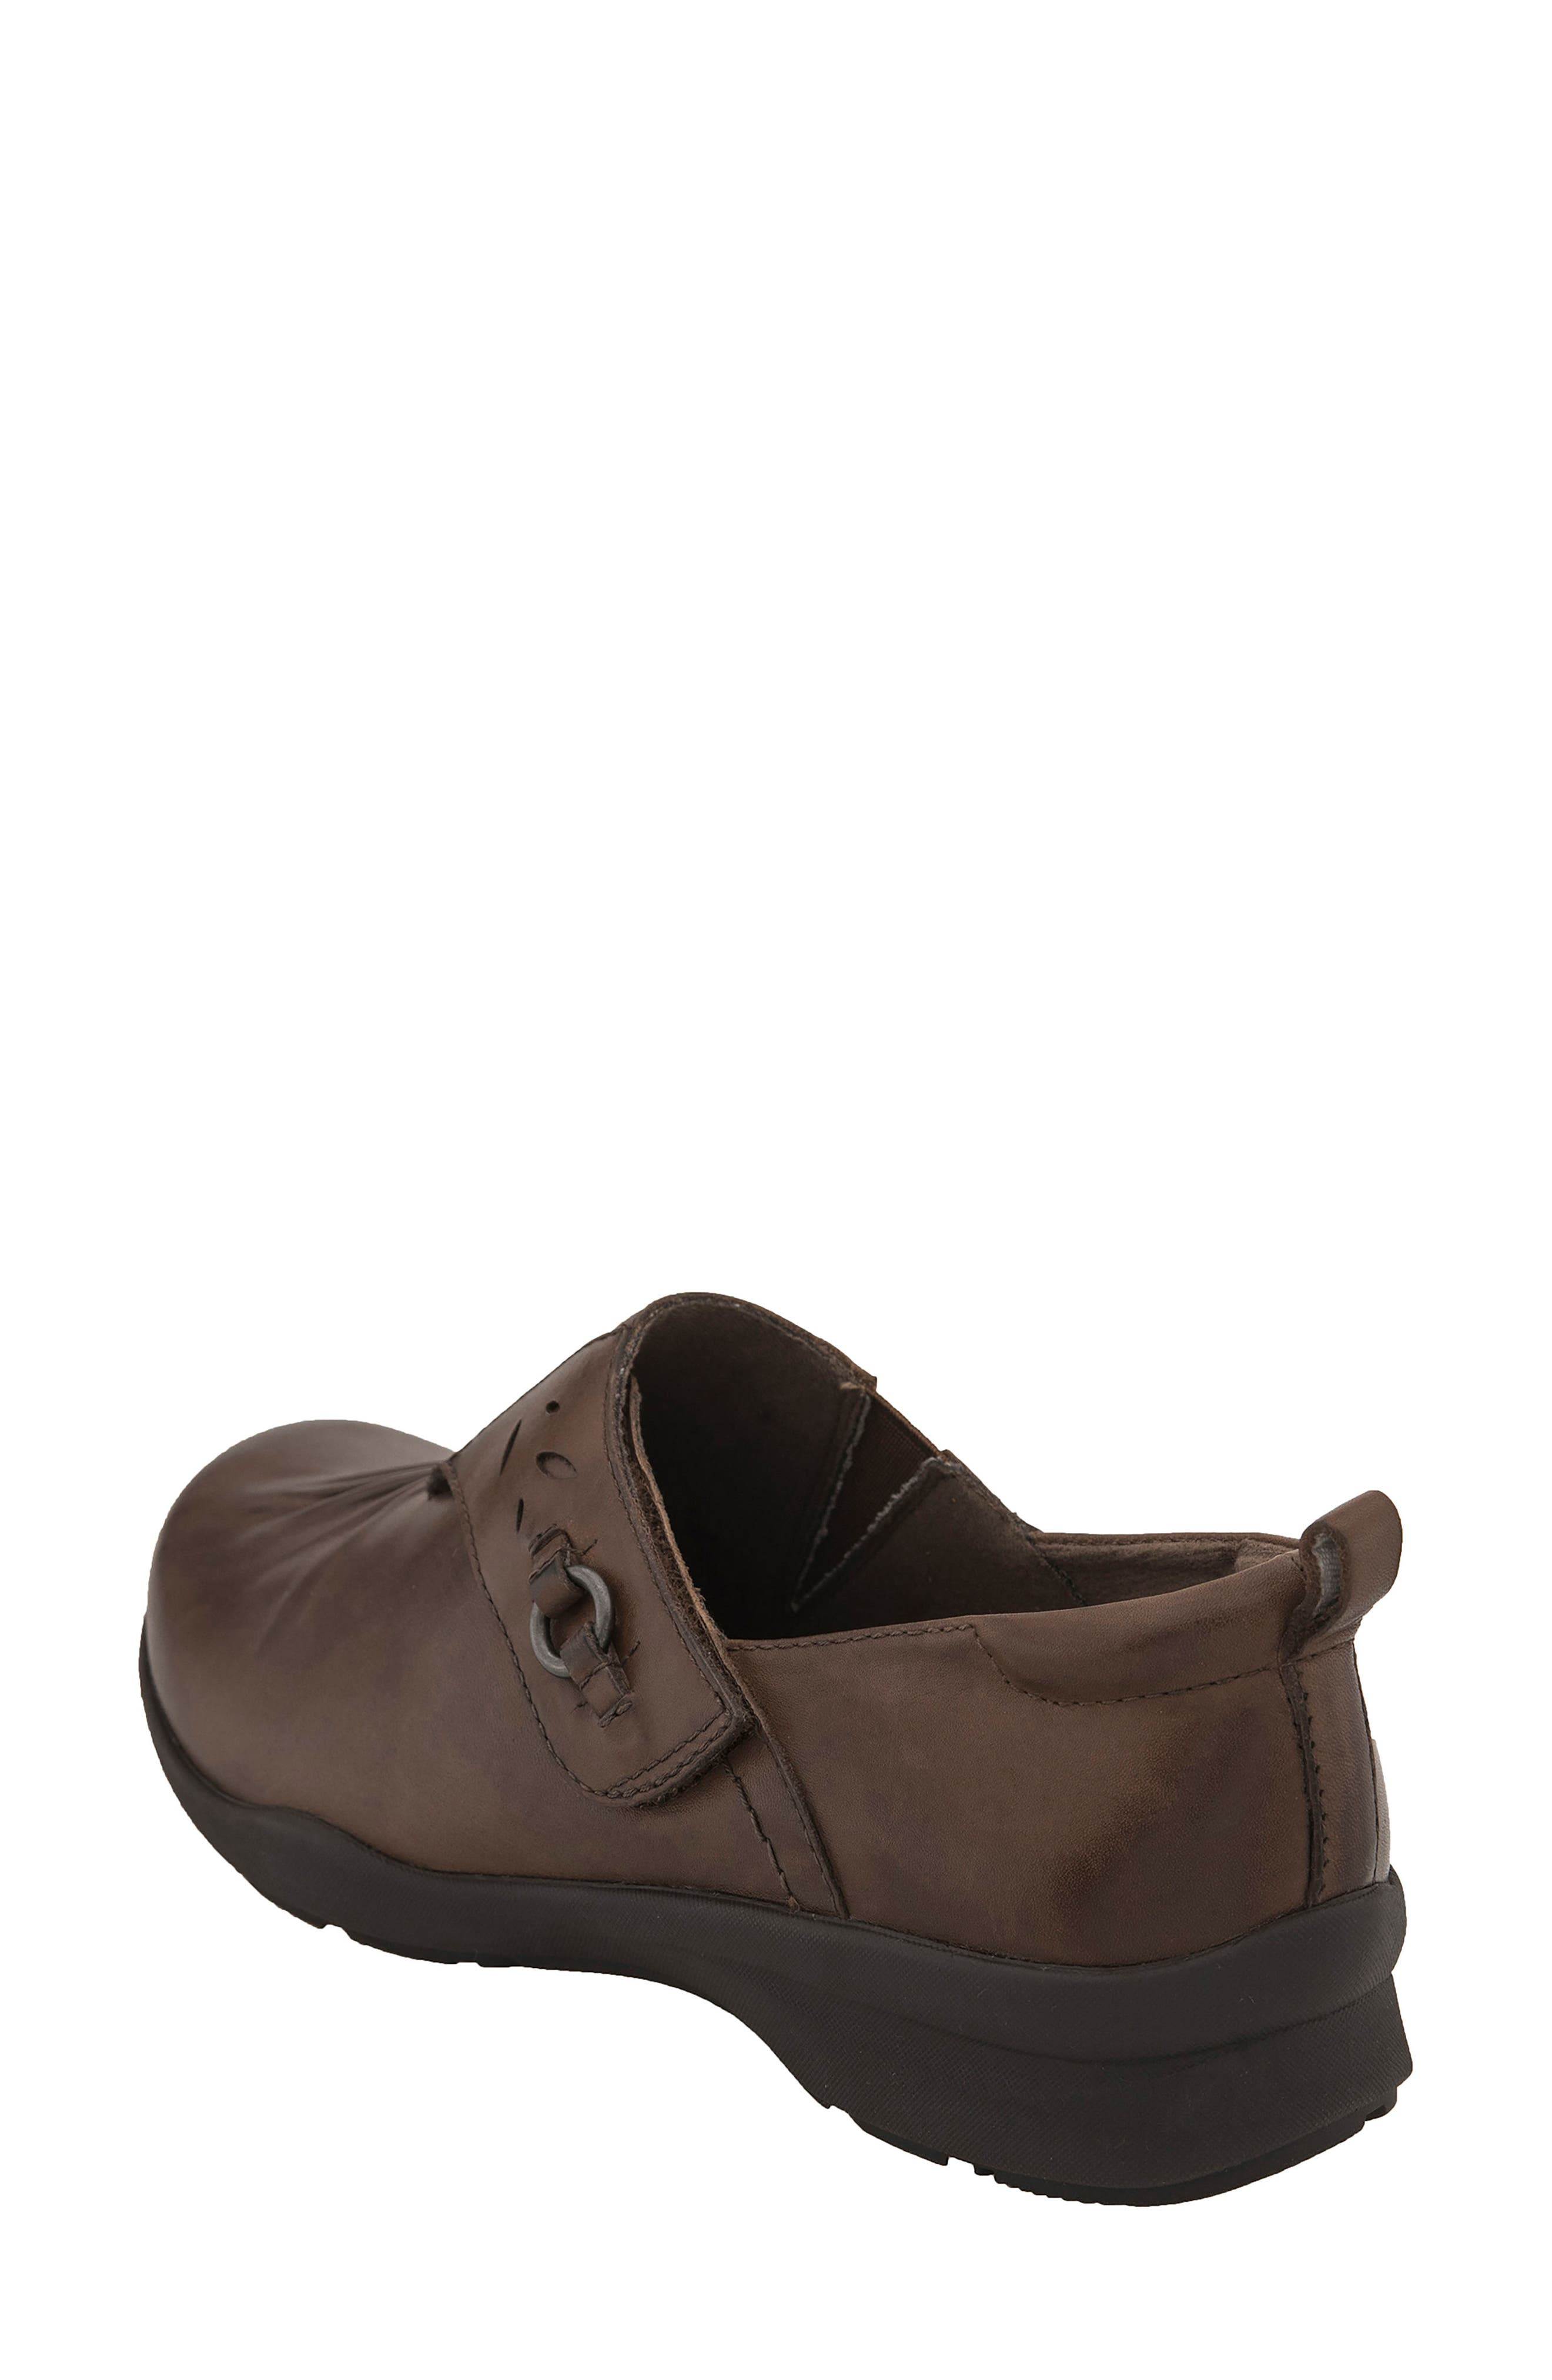 Amity Loafer,                             Alternate thumbnail 2, color,                             Almond Leather